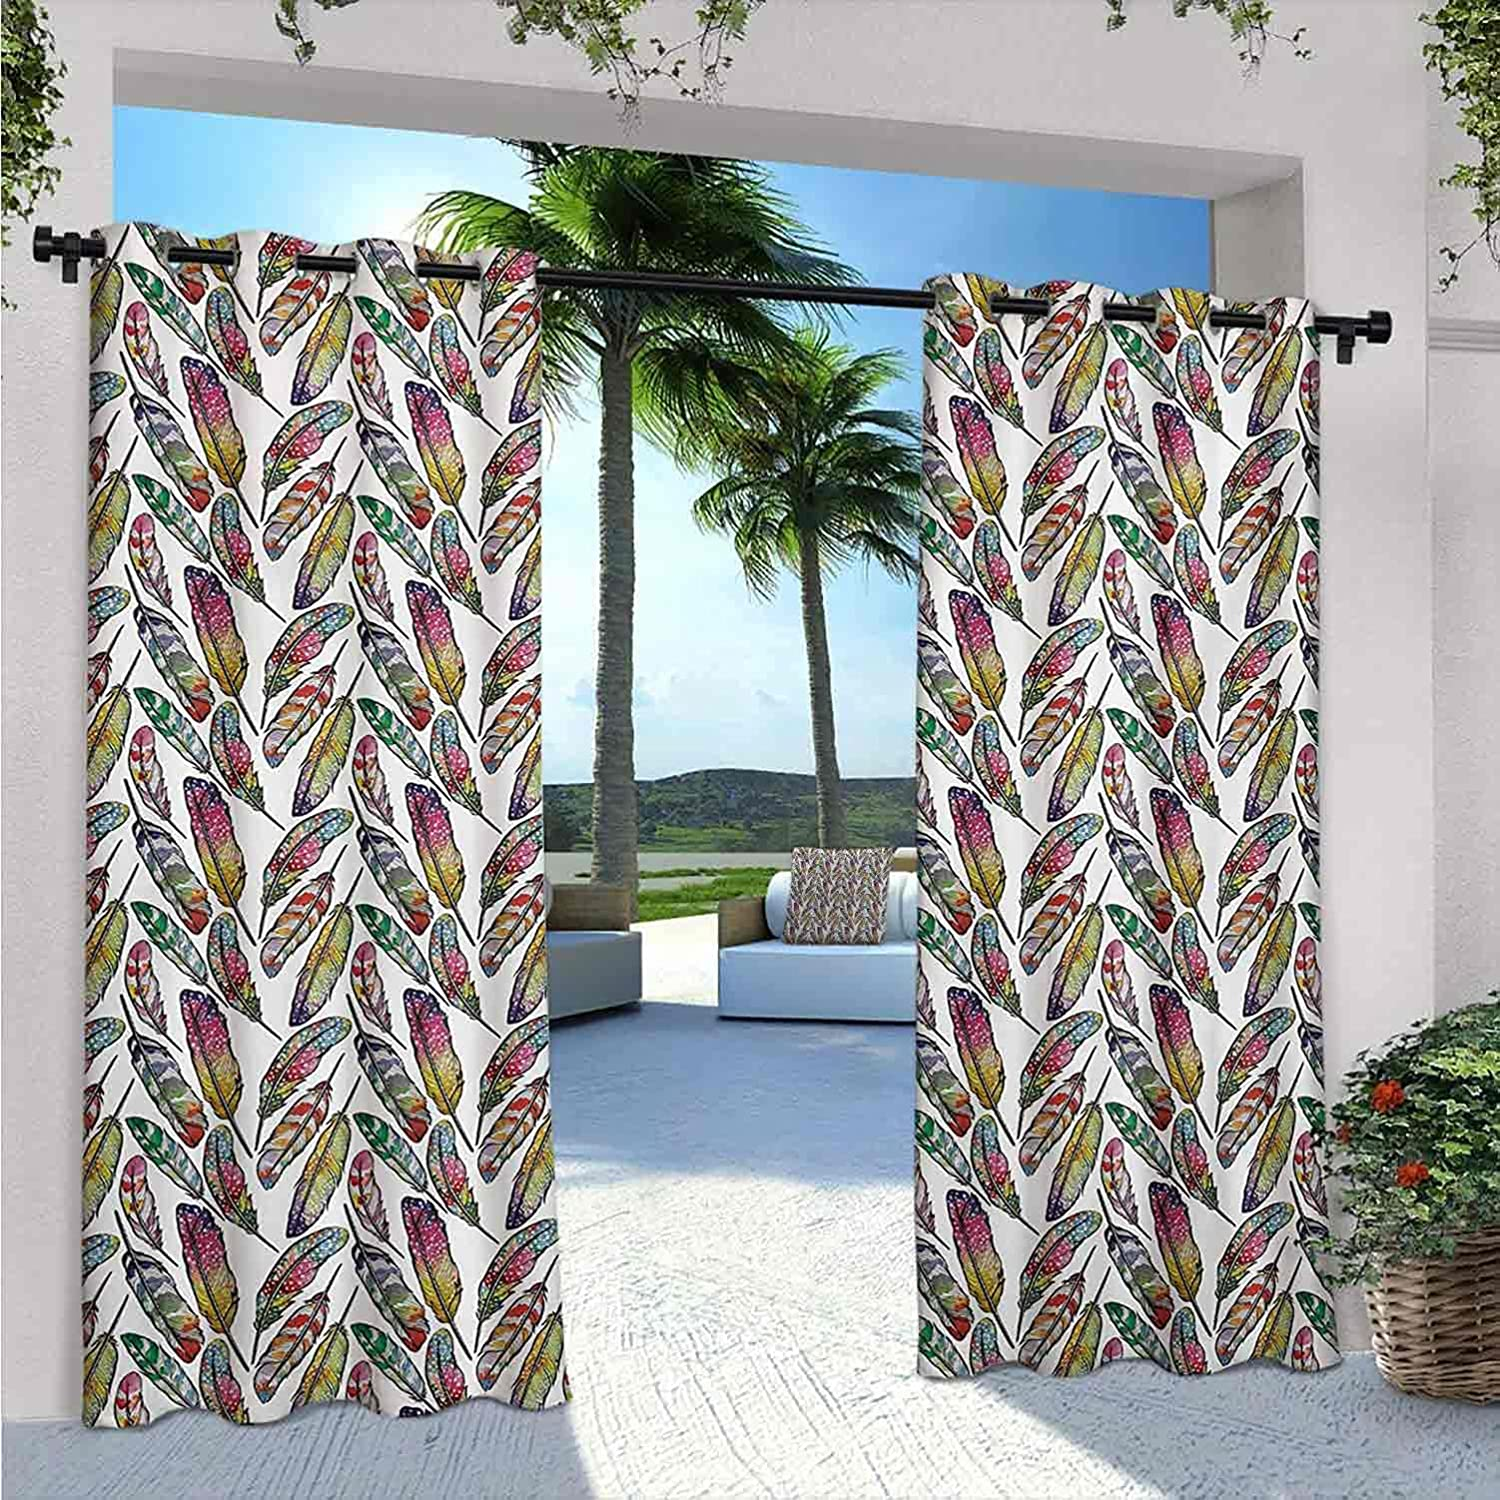 Feather Waterproof Gazebo Curtains Contrast Boho Feathers Vivid Reservation We OFFer at cheap prices